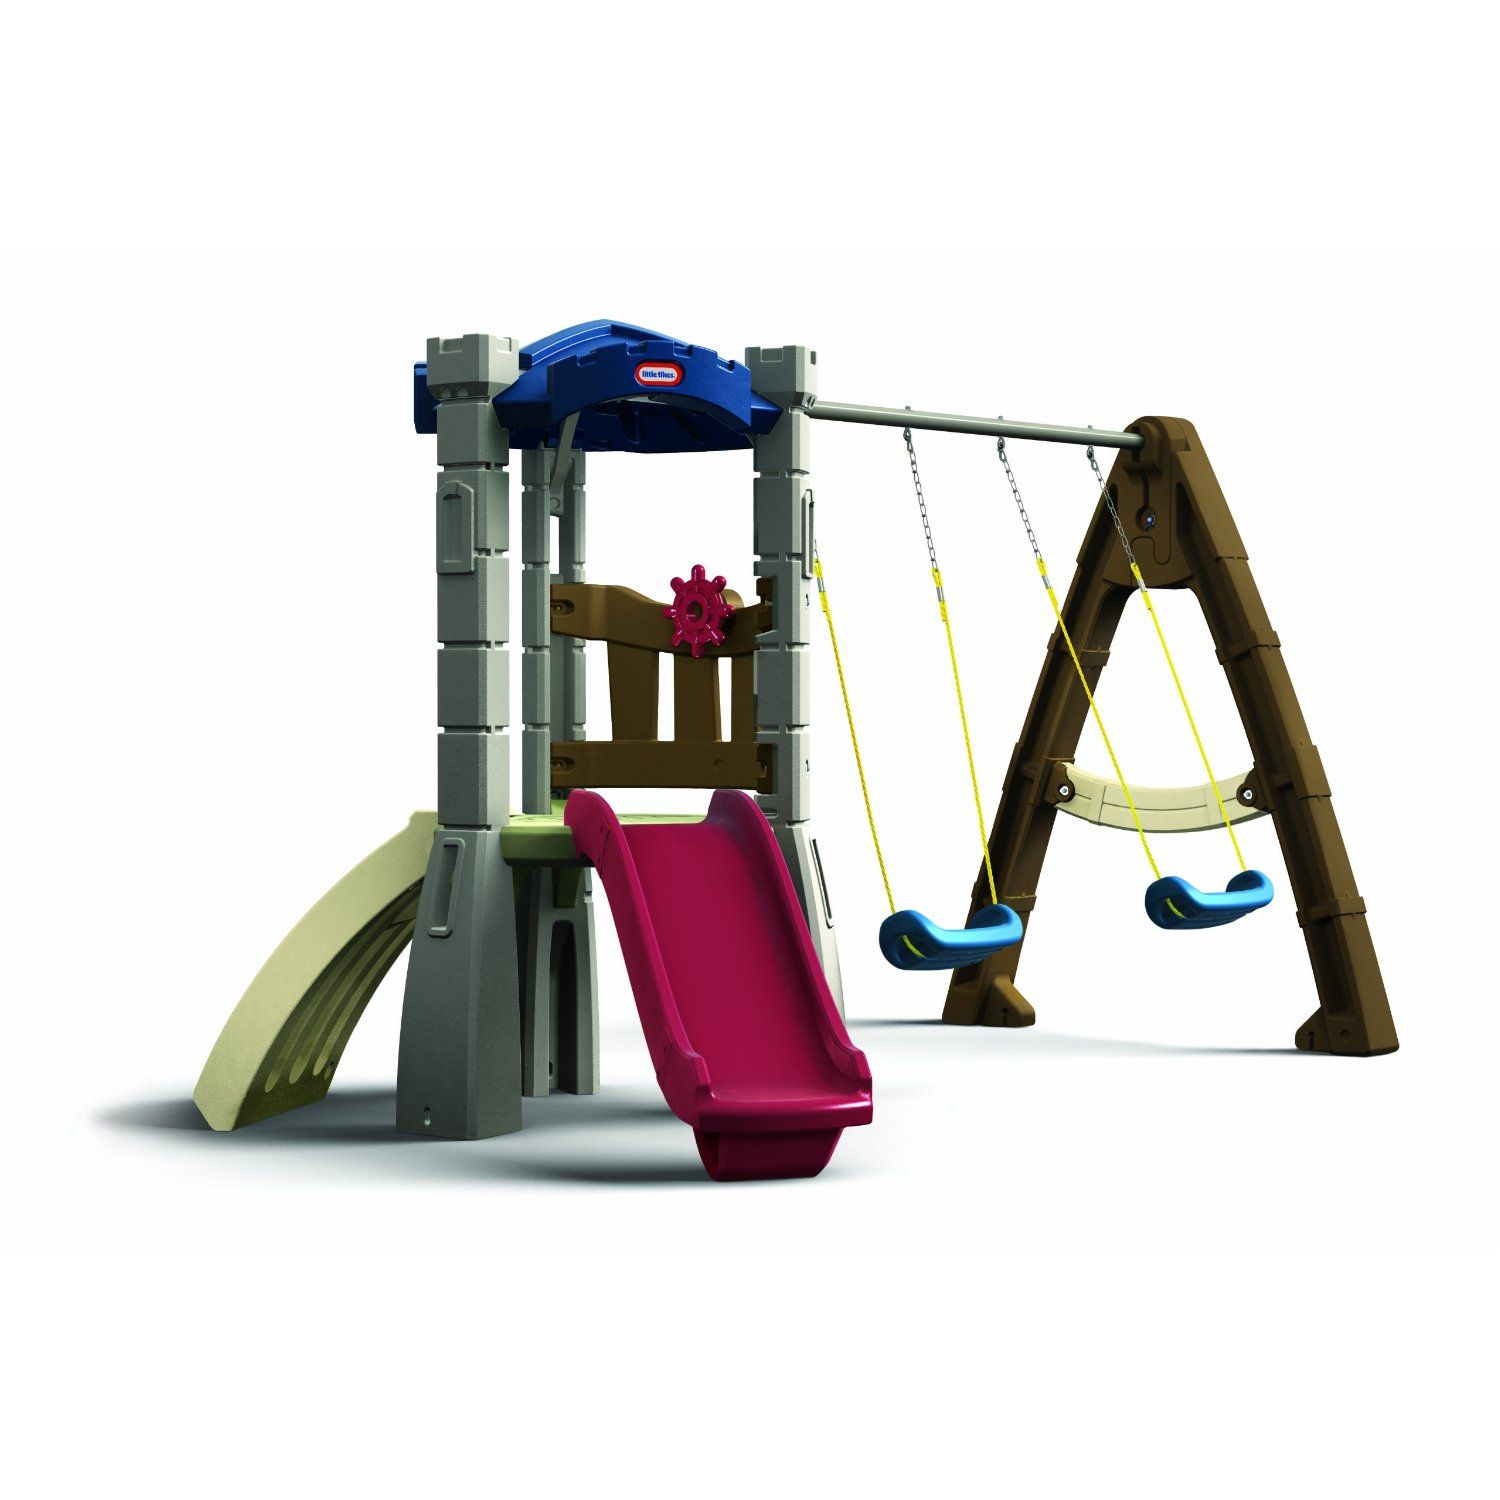 Amazing little tikes outdoor playset pictures children for Little tikes outdoor playset